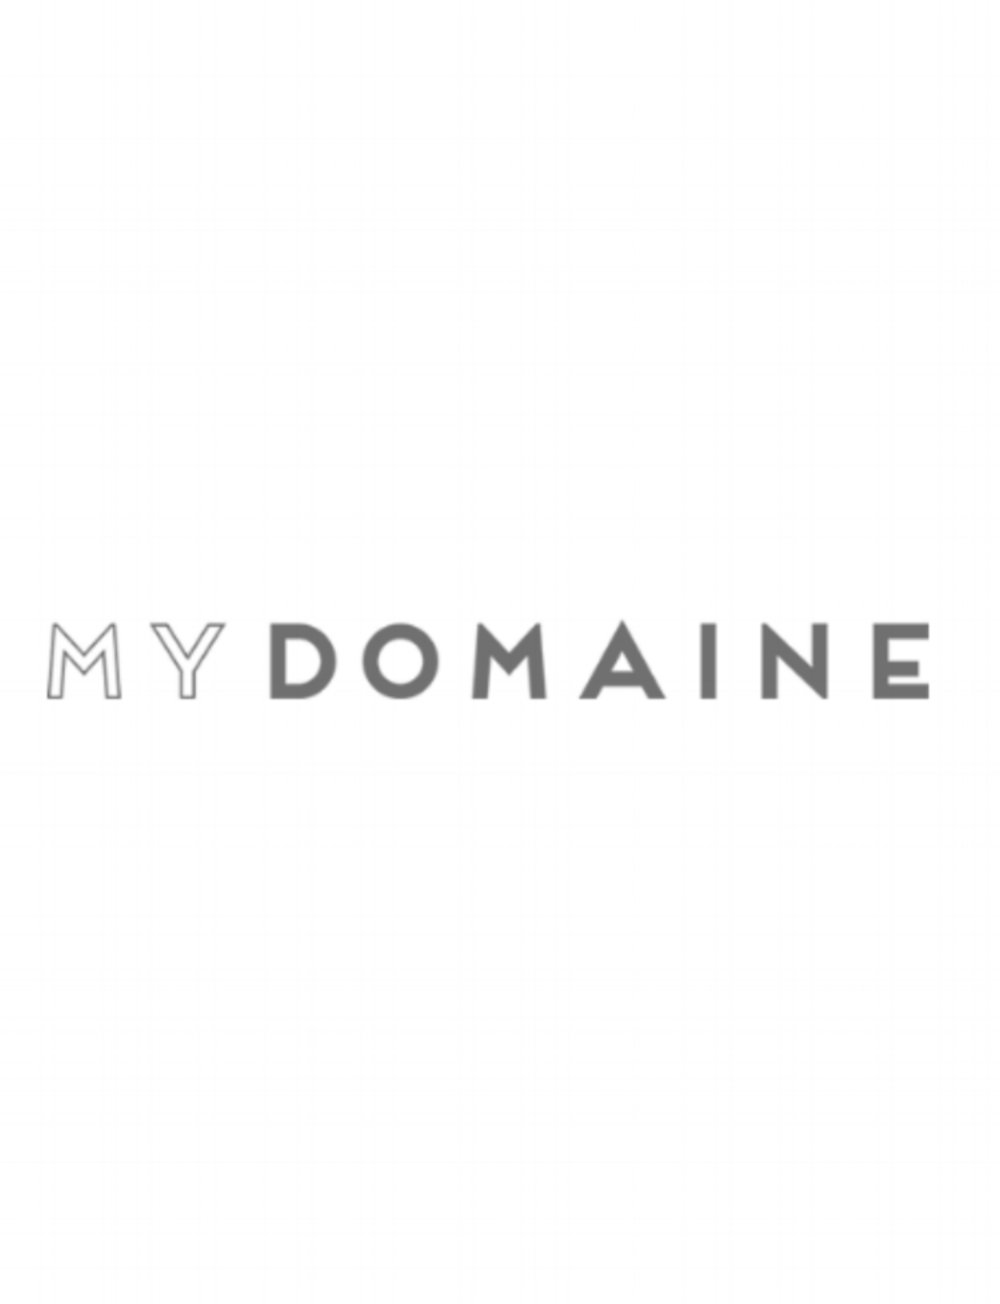 My Domaine Feature